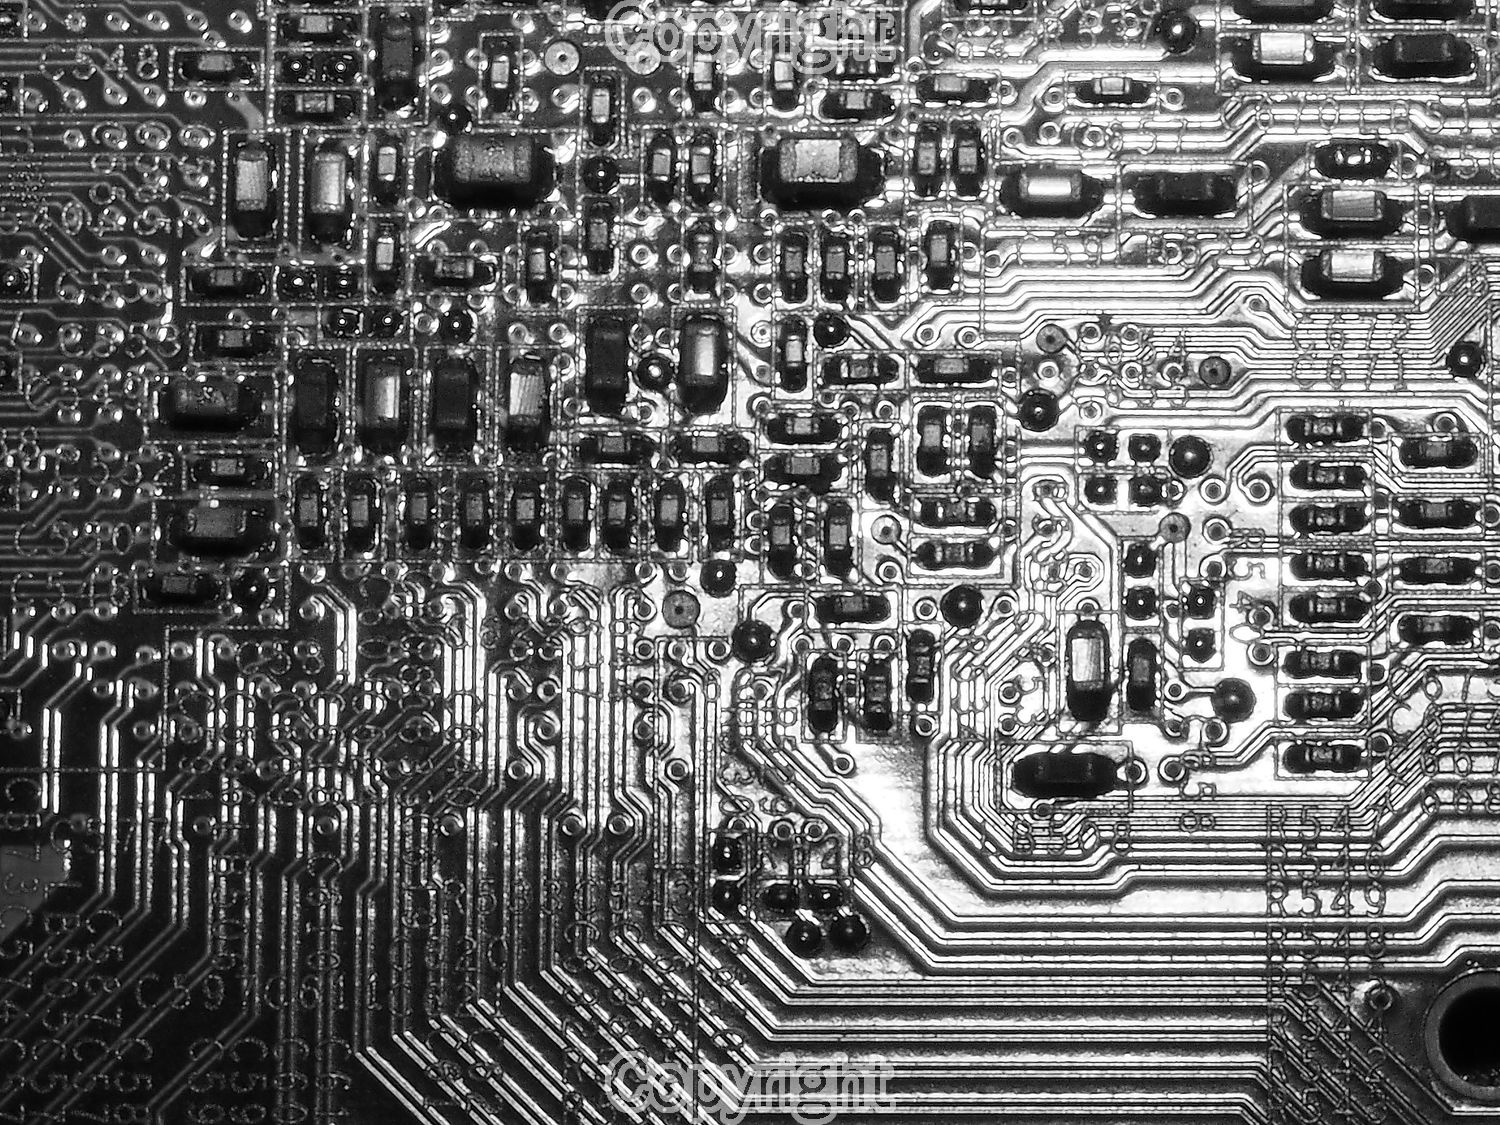 Bob Wood: Computer printed circuit board.  Equipment: Olympus OMD M1 & 60mm Macro Lens